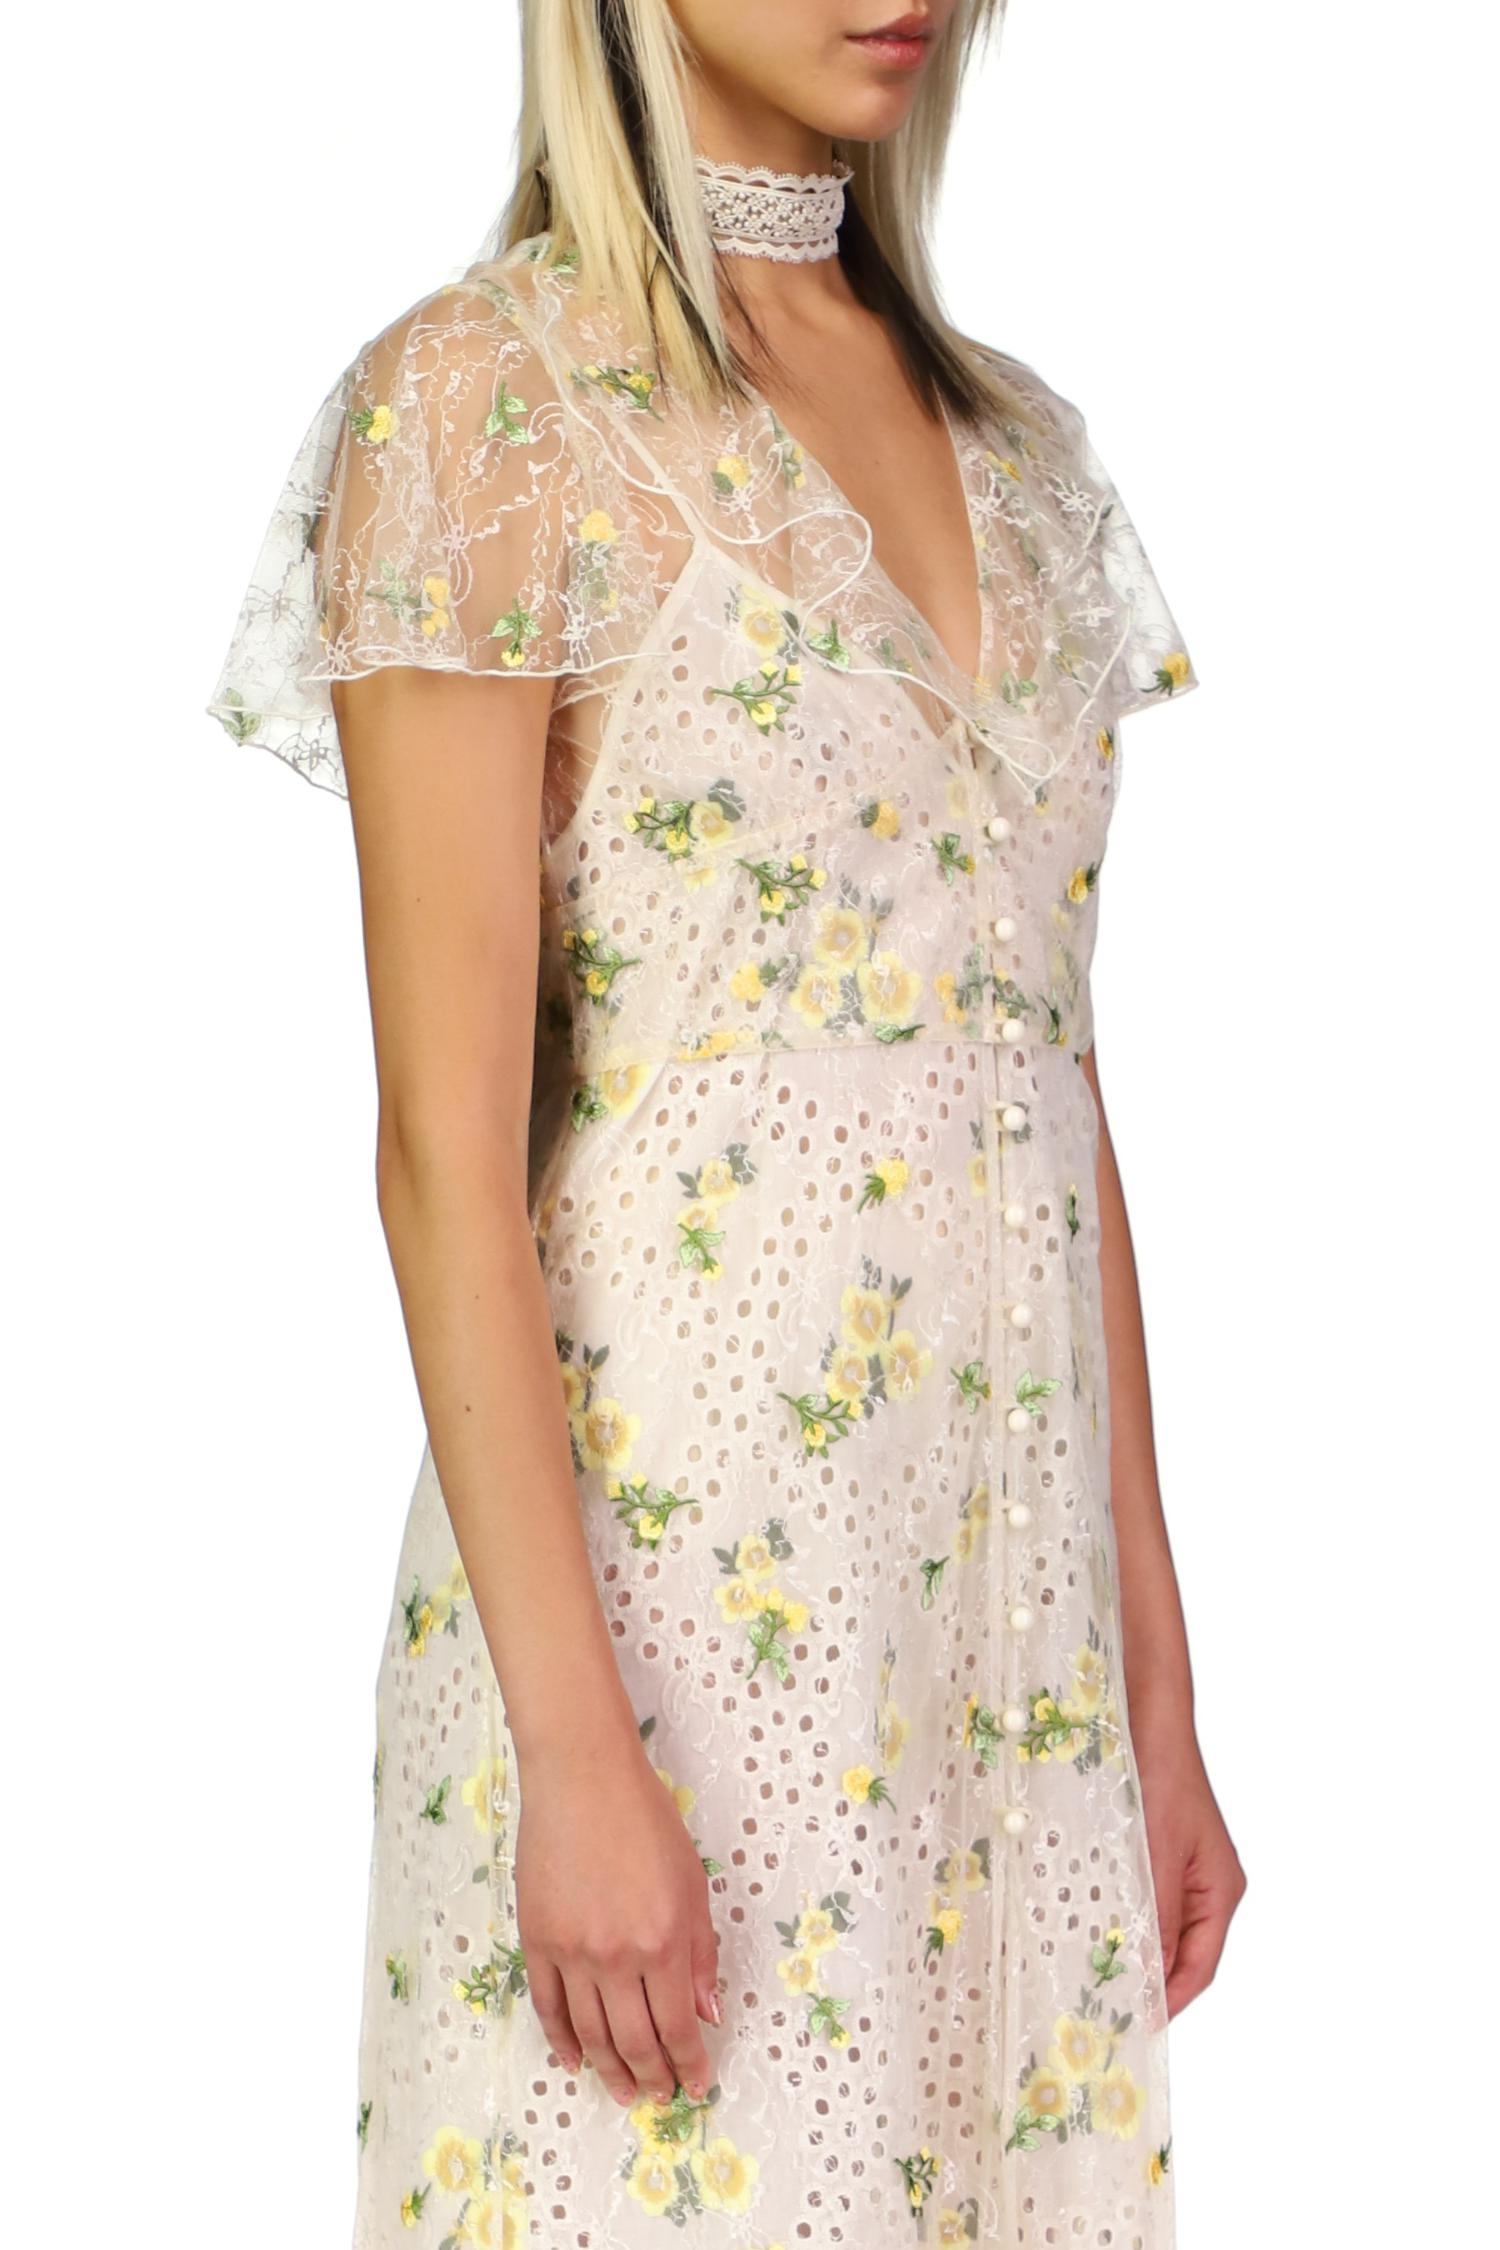 Scattered Blooms Lace Cover Up 2